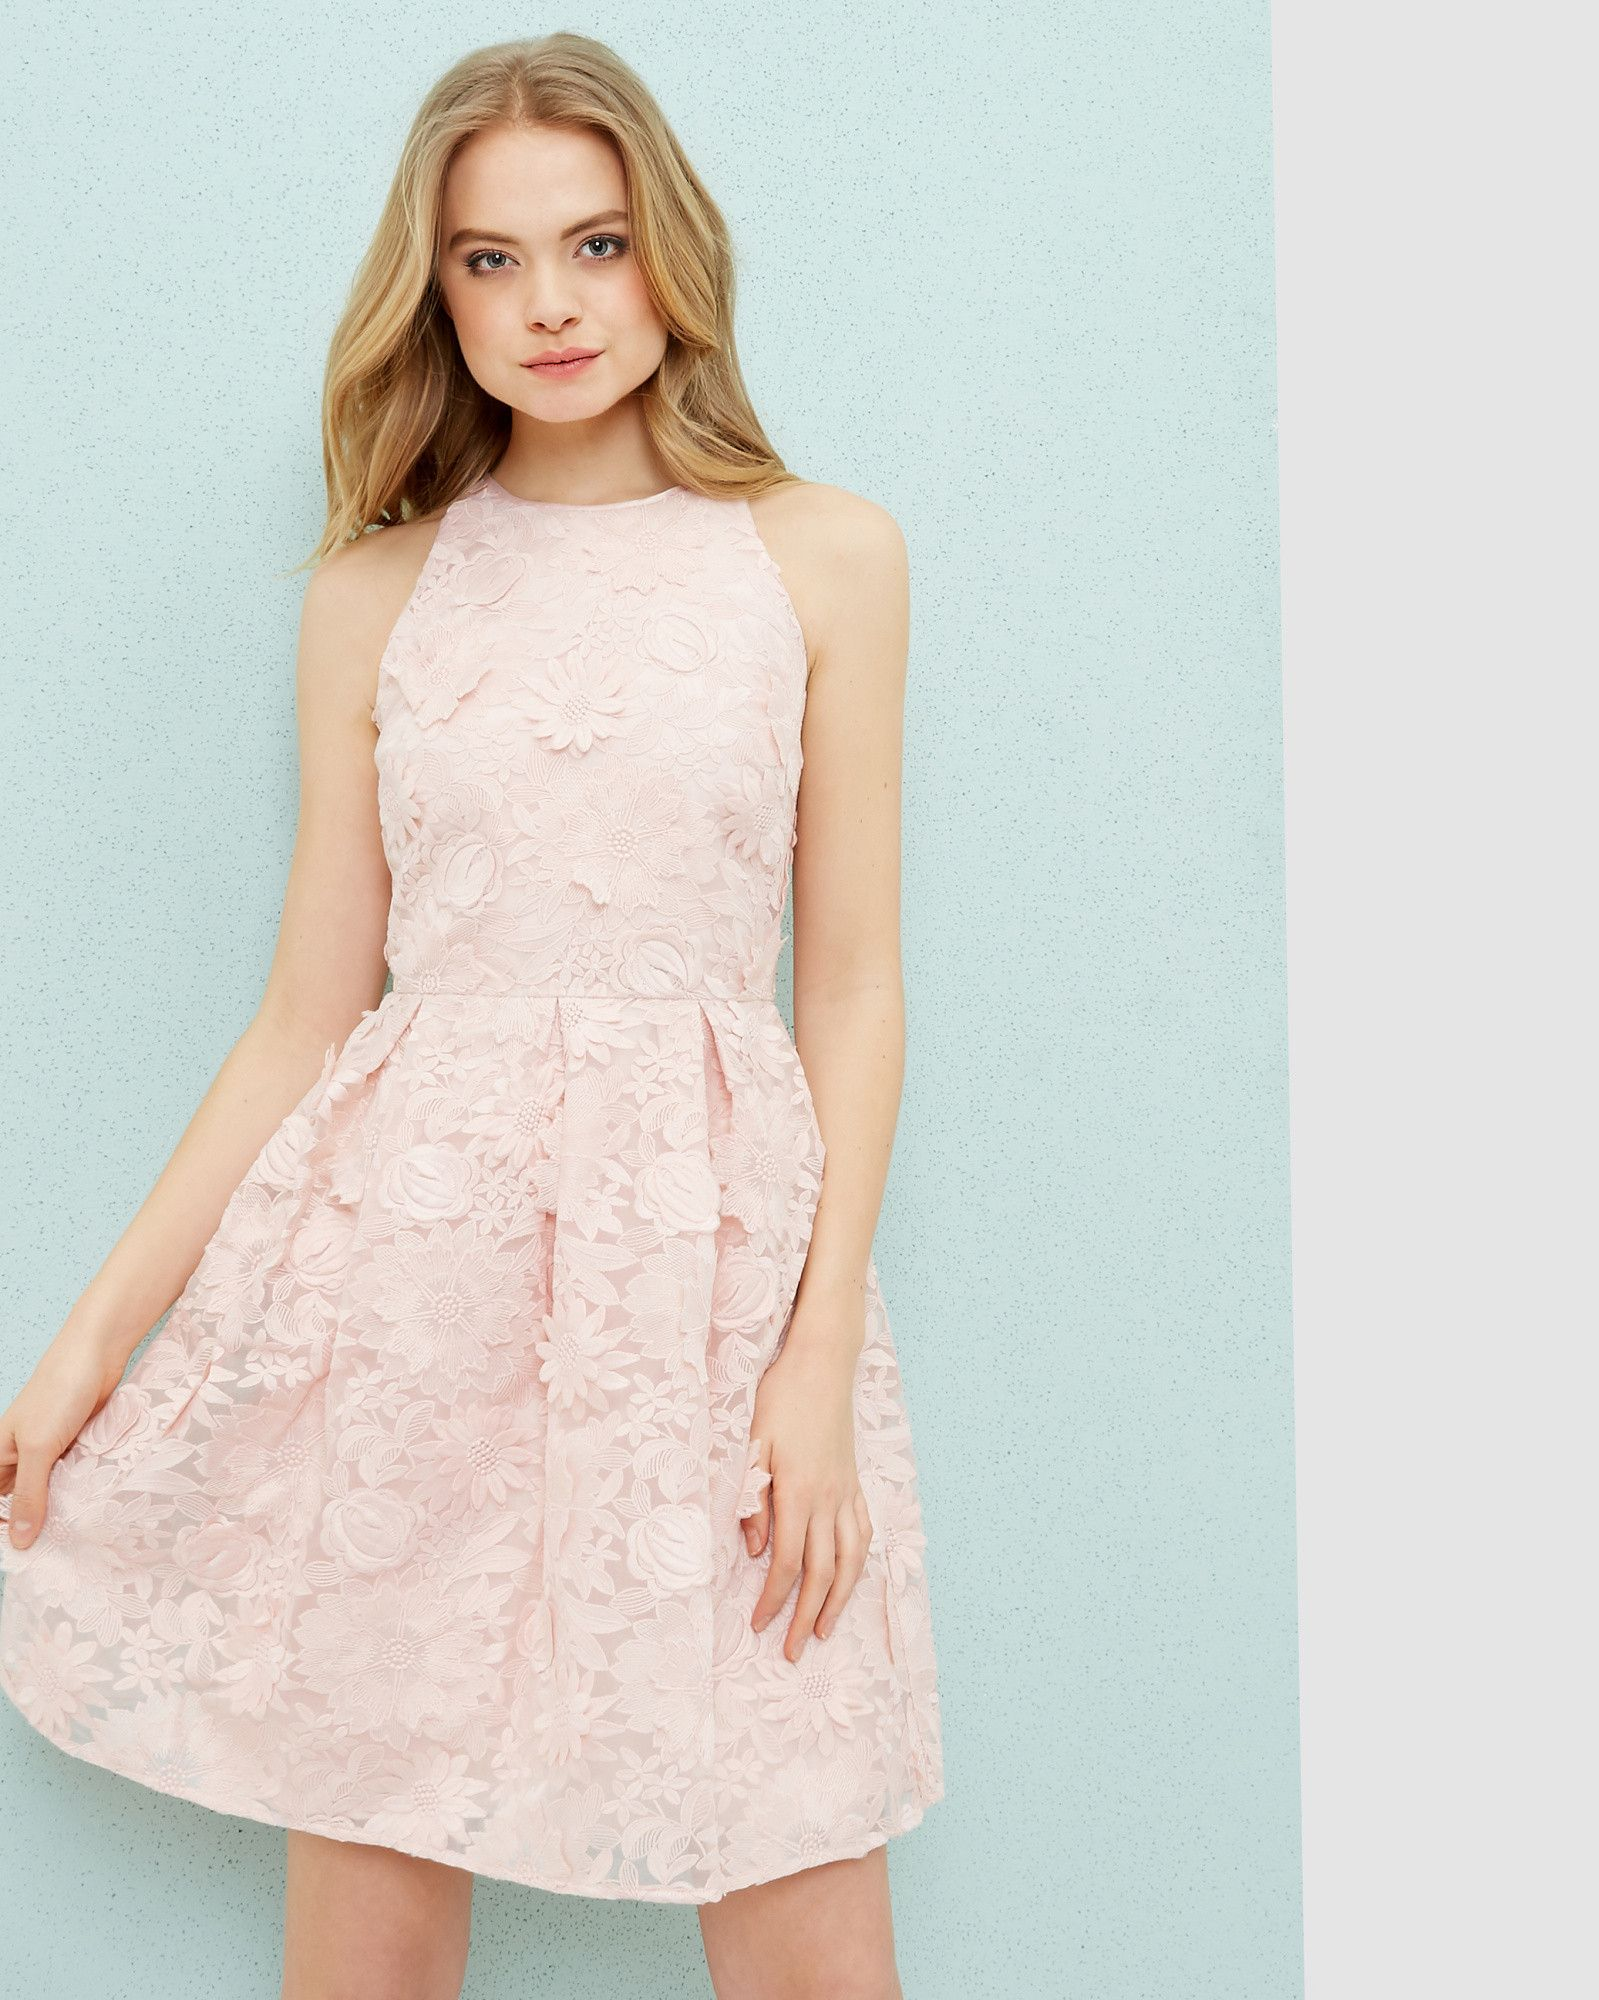 97a72f28ae Lace skater dress - Baby Pink